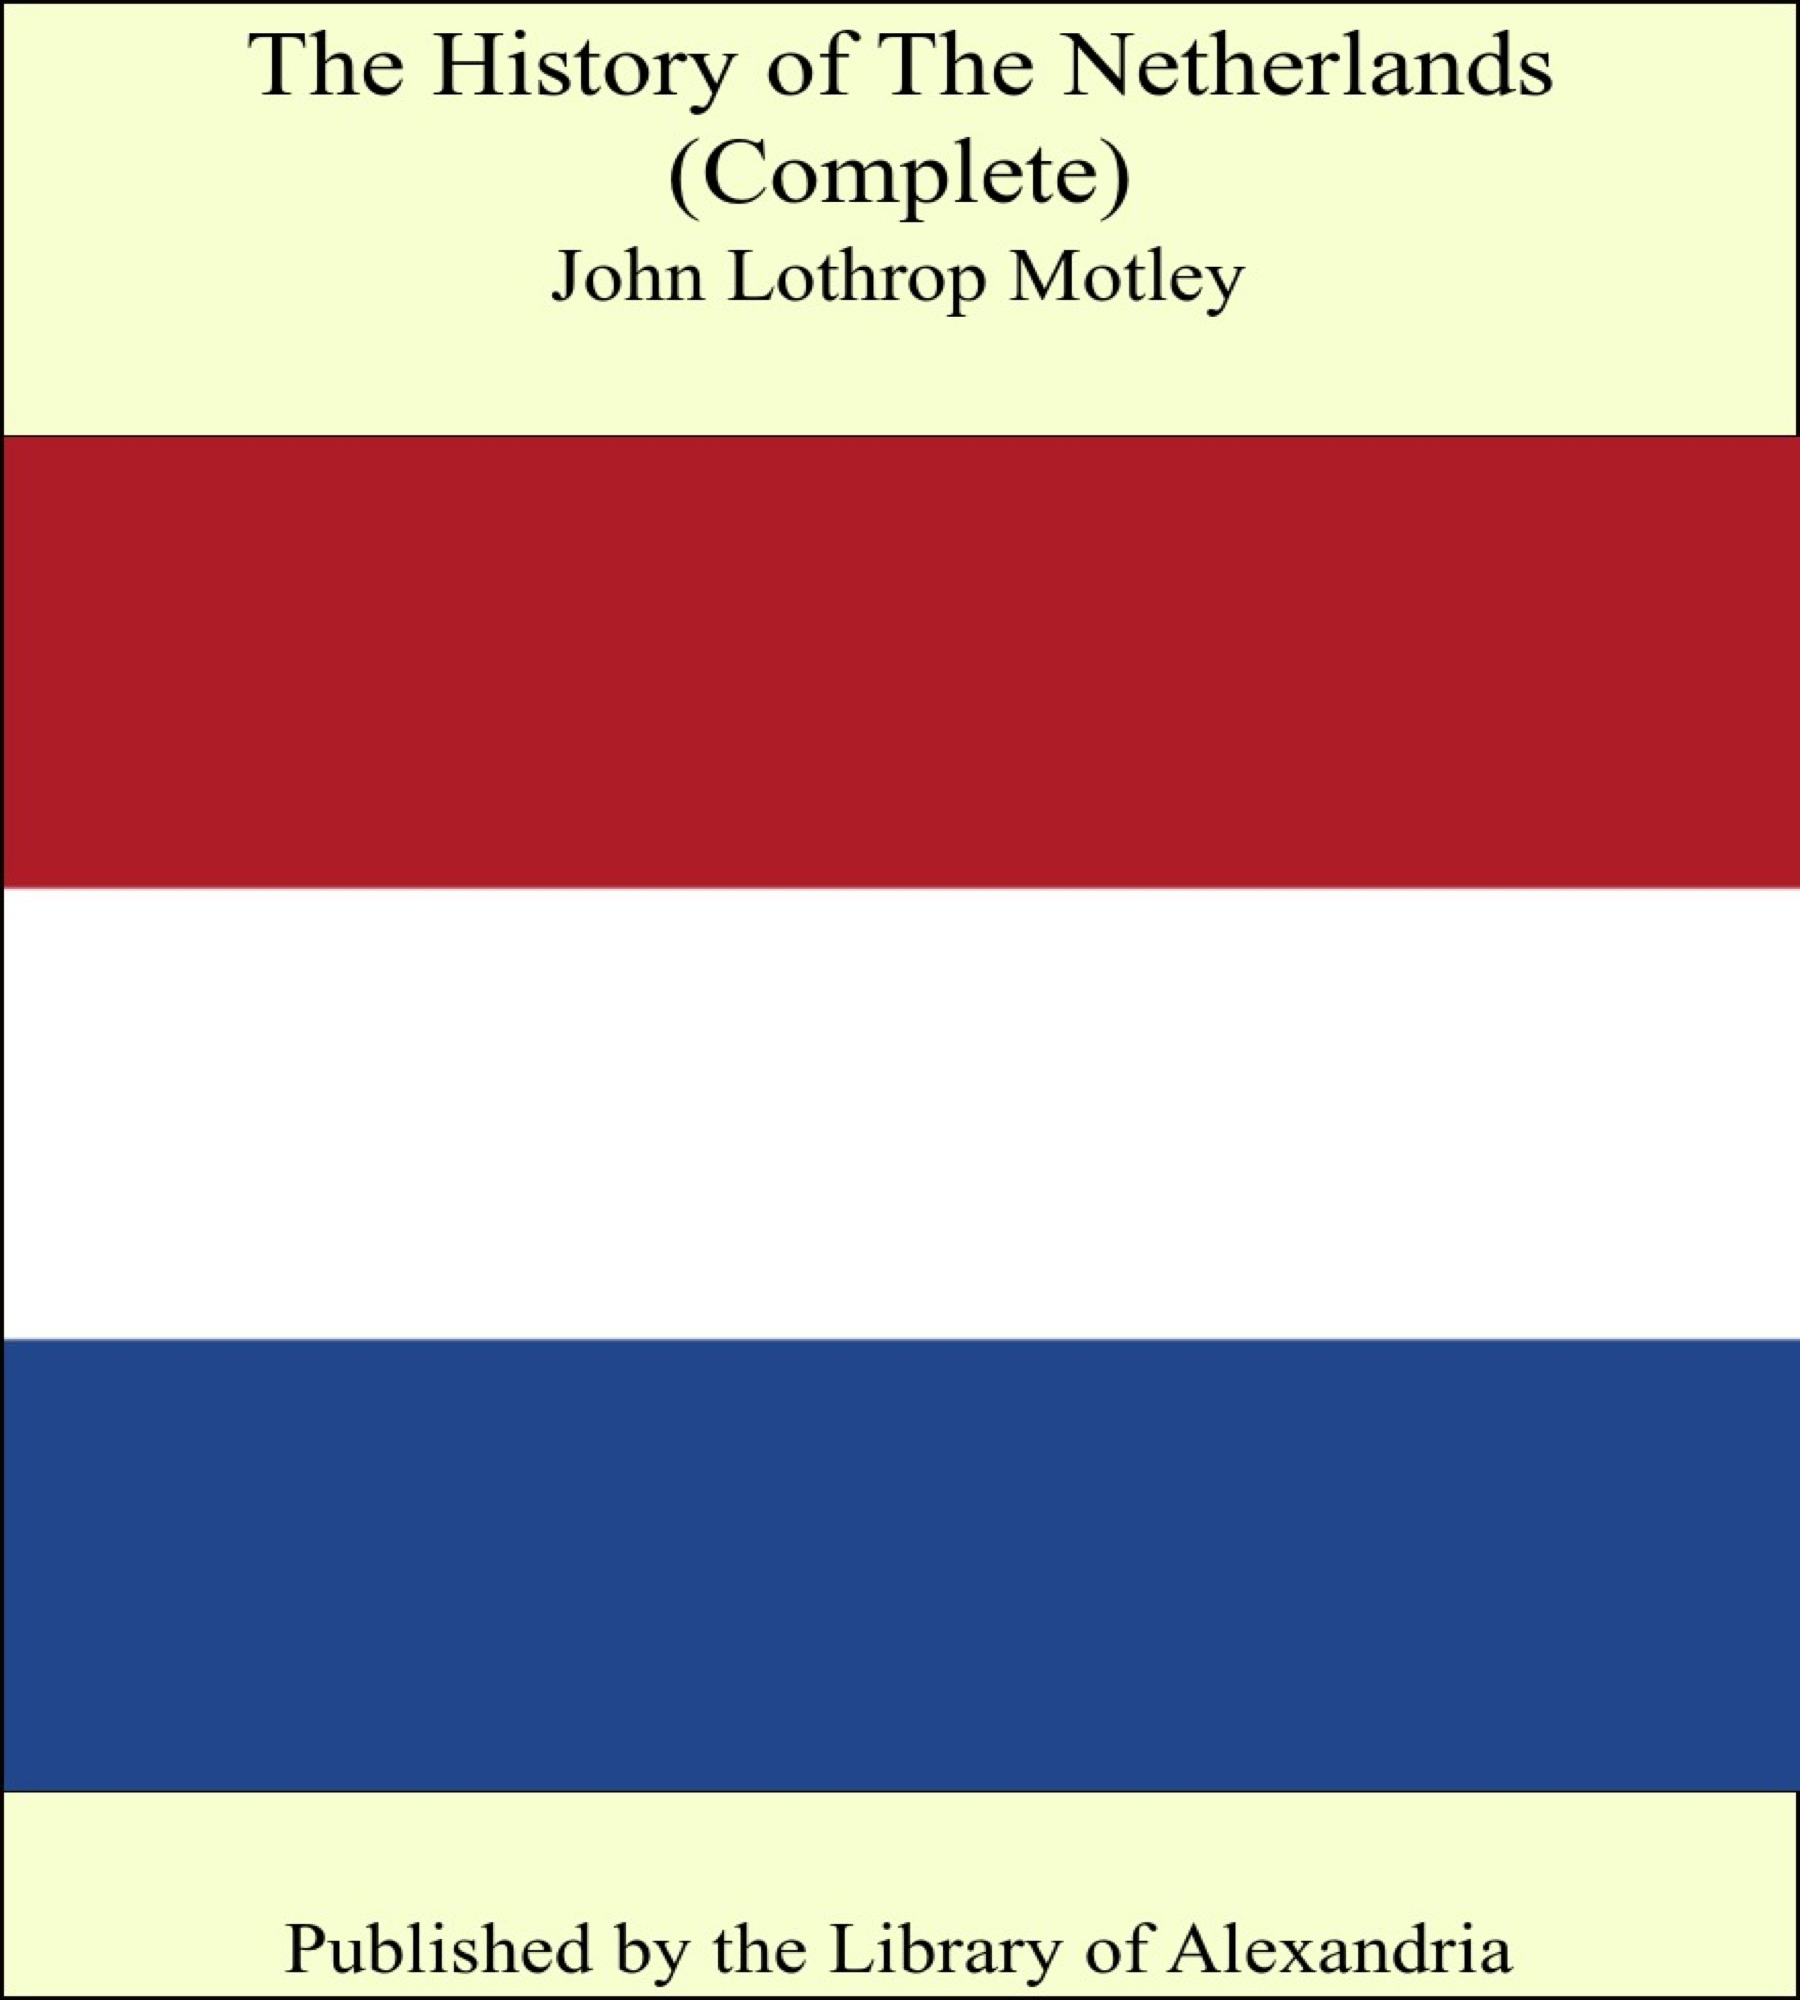 The History of The Netherlands (Complete) By: John Lothrop Motley